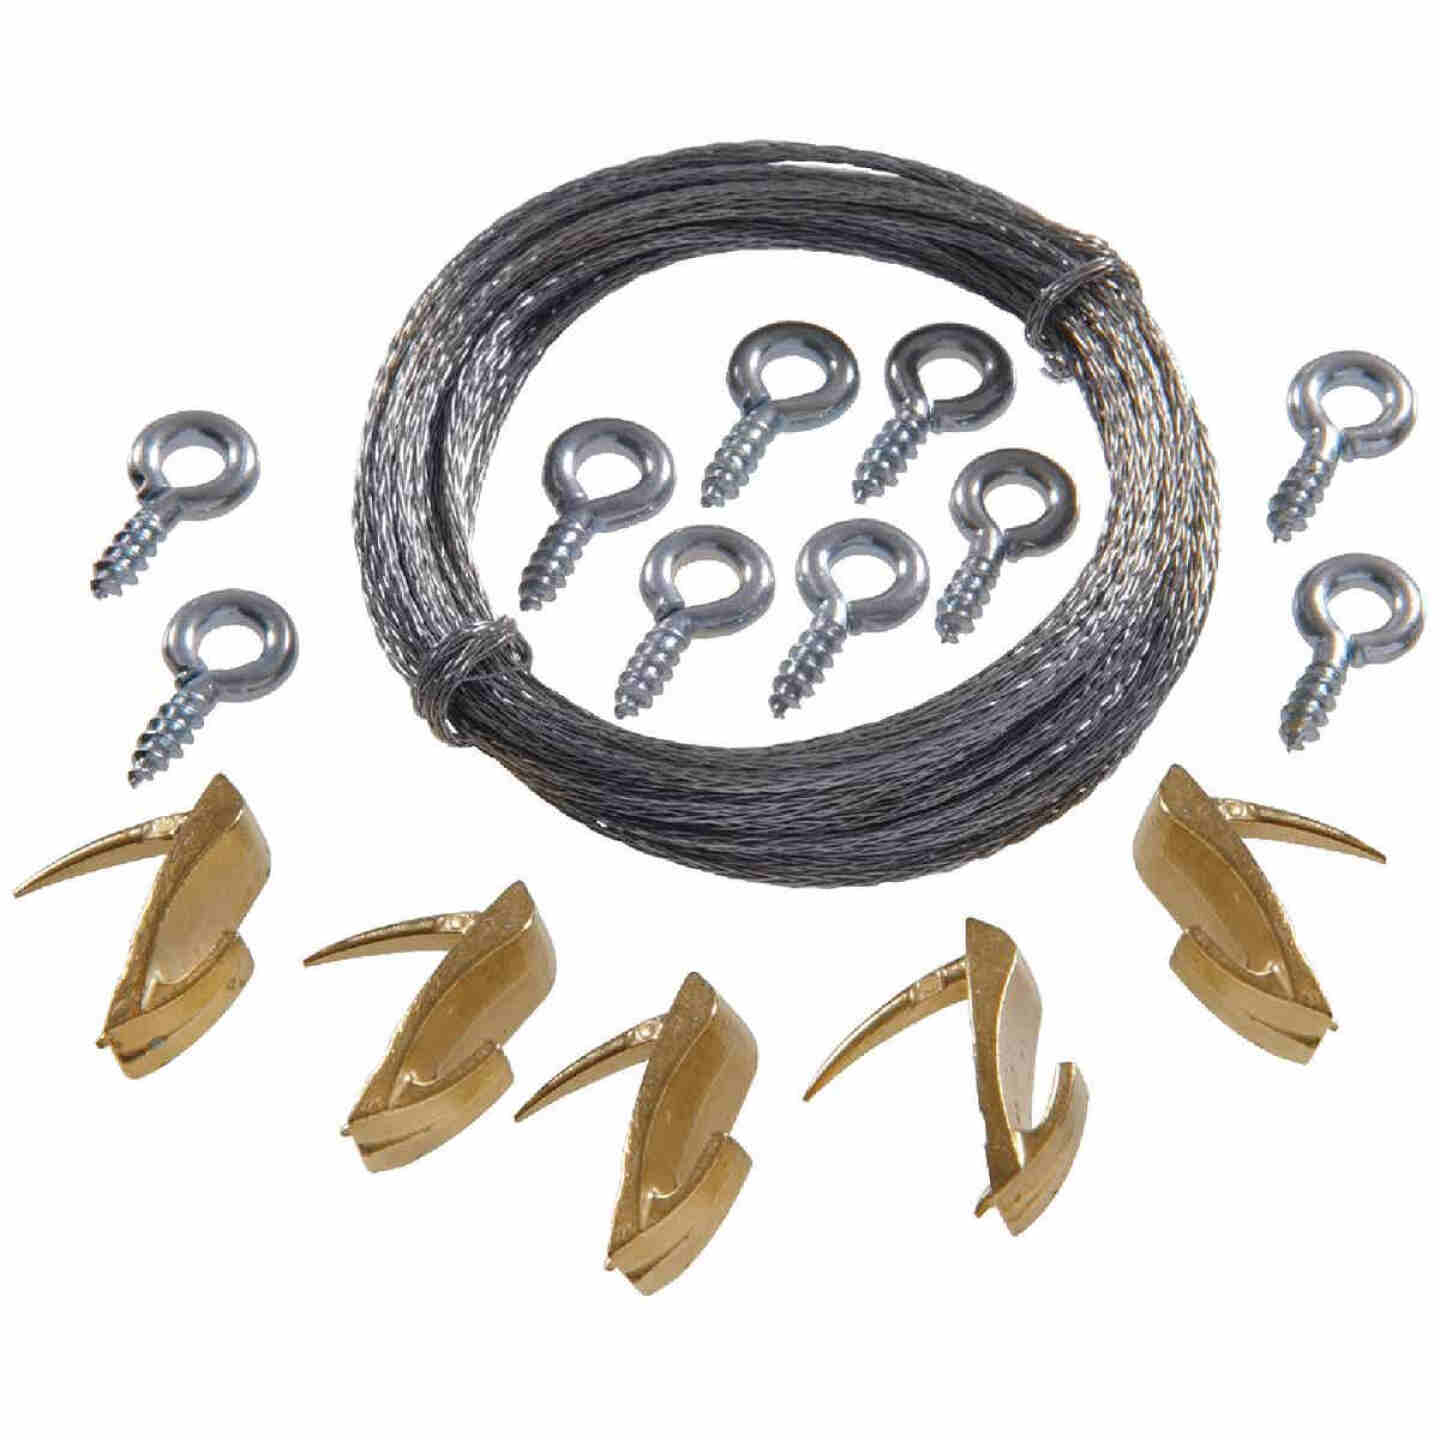 Hillman Anchor Wire 20 Lb. Capacity Wallbiter Picture Hanging Kit Image 1